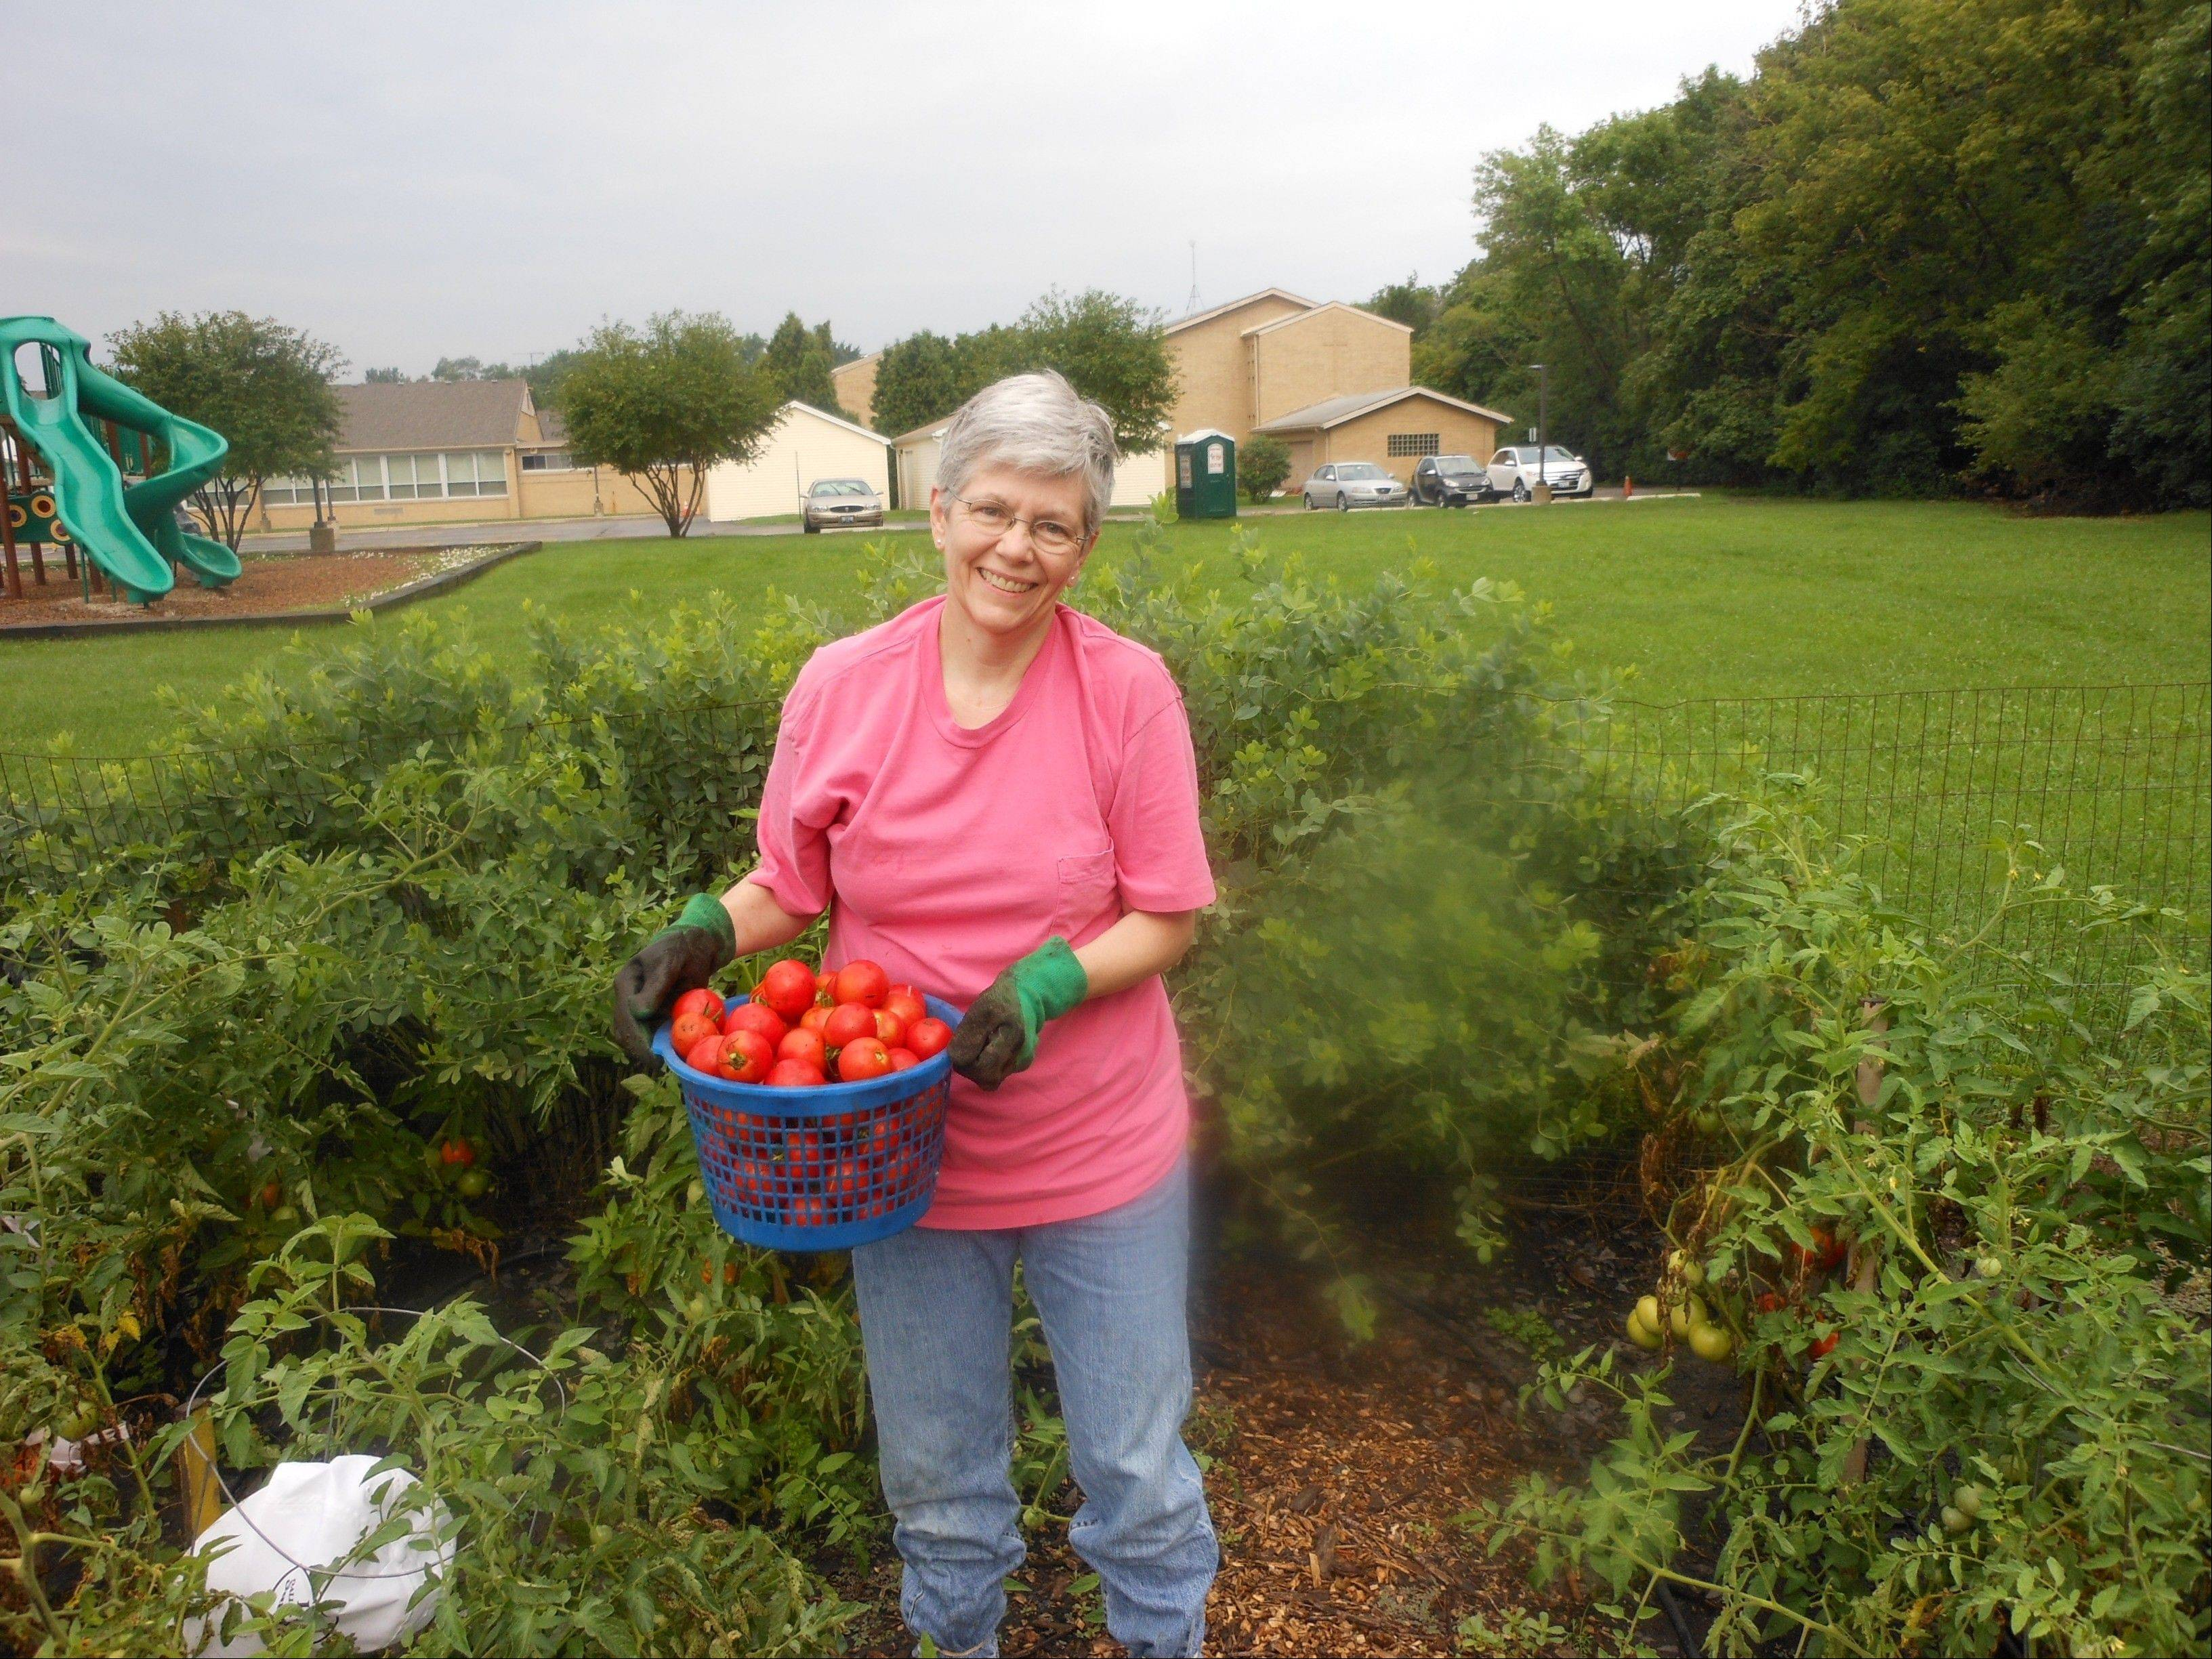 Laraine Bodnar harvests a bushel full of tomatoes at St. Alphonsus Liguori Church in Prospect Heights for the Giving Garden Plant a Row for the Hungry campaign.